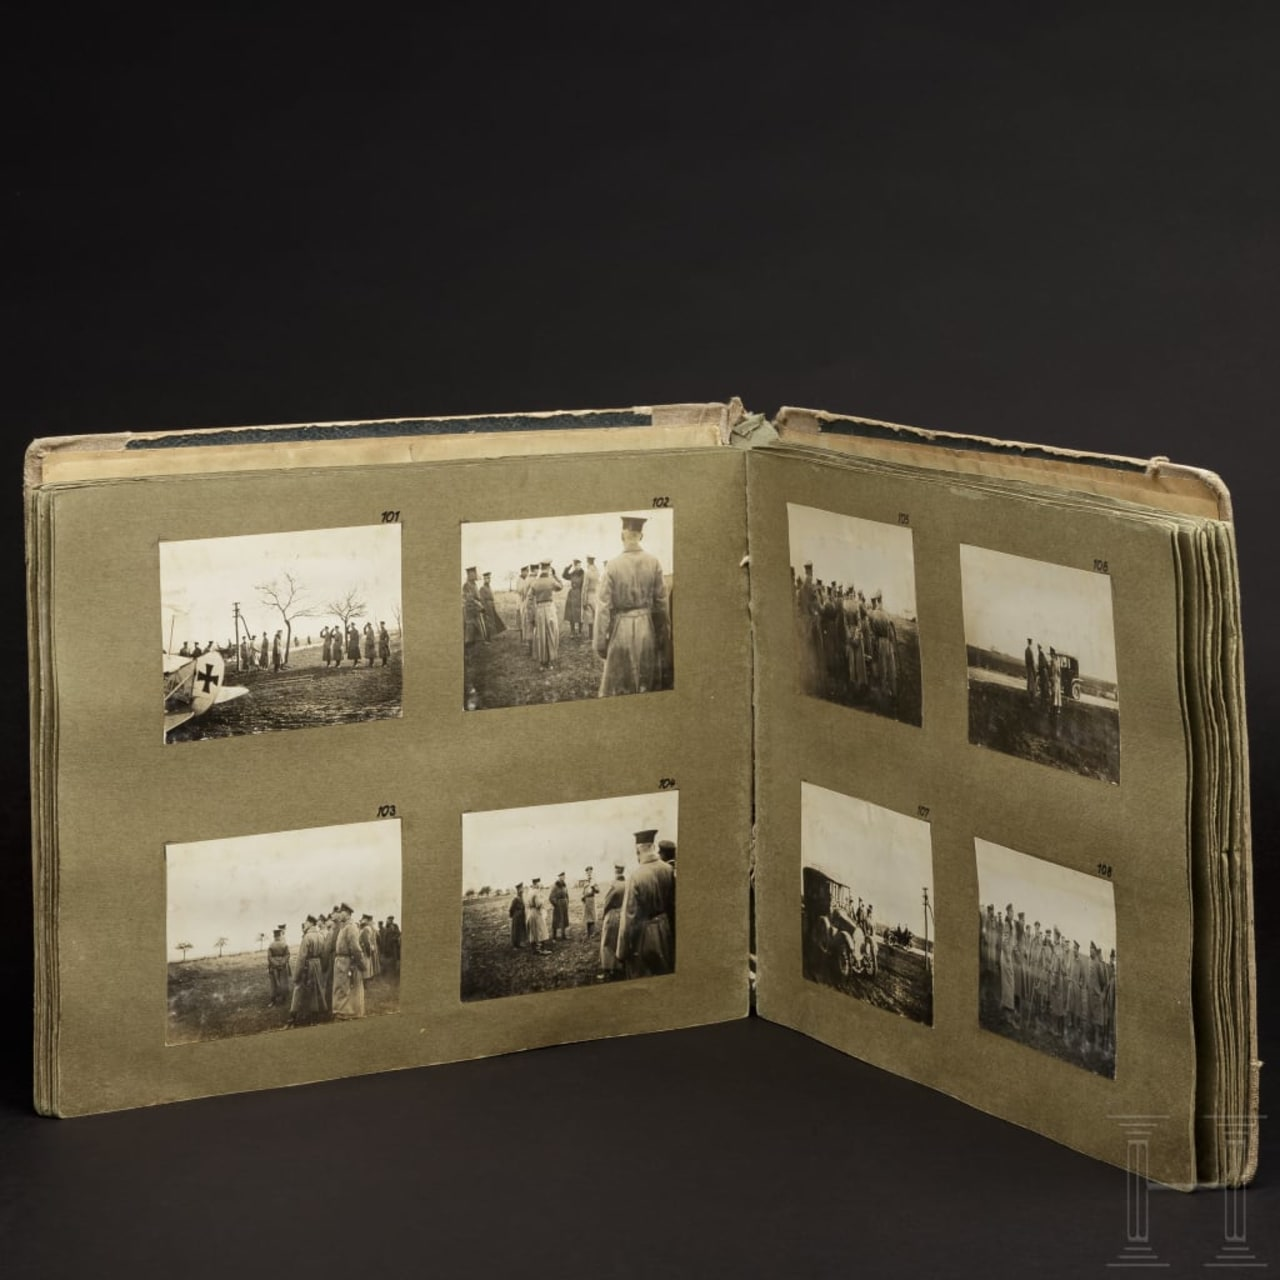 A photo album of a German aviation department in World War I near Verdun in France